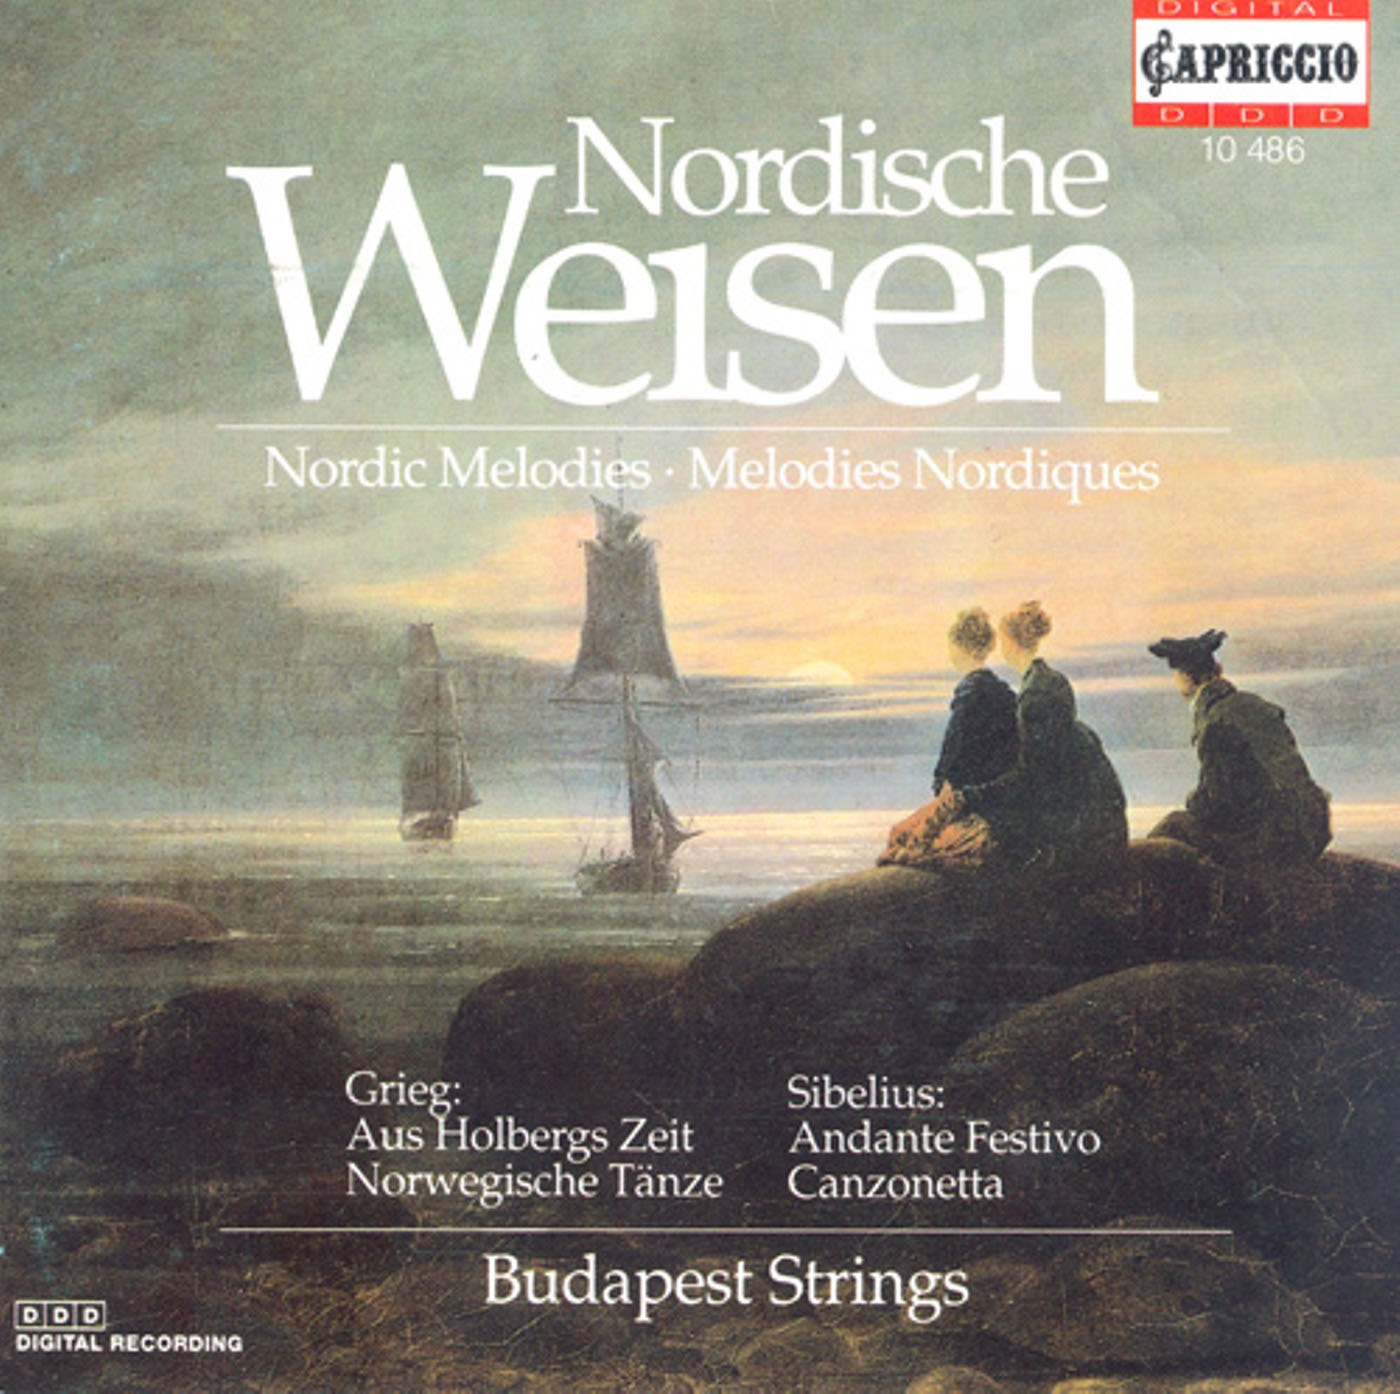 Grieg, E.: From Holberg's Time - 2 Nordic Melodies - Suite Champetre - Romance, Op. 42 (Nordic Melodies)